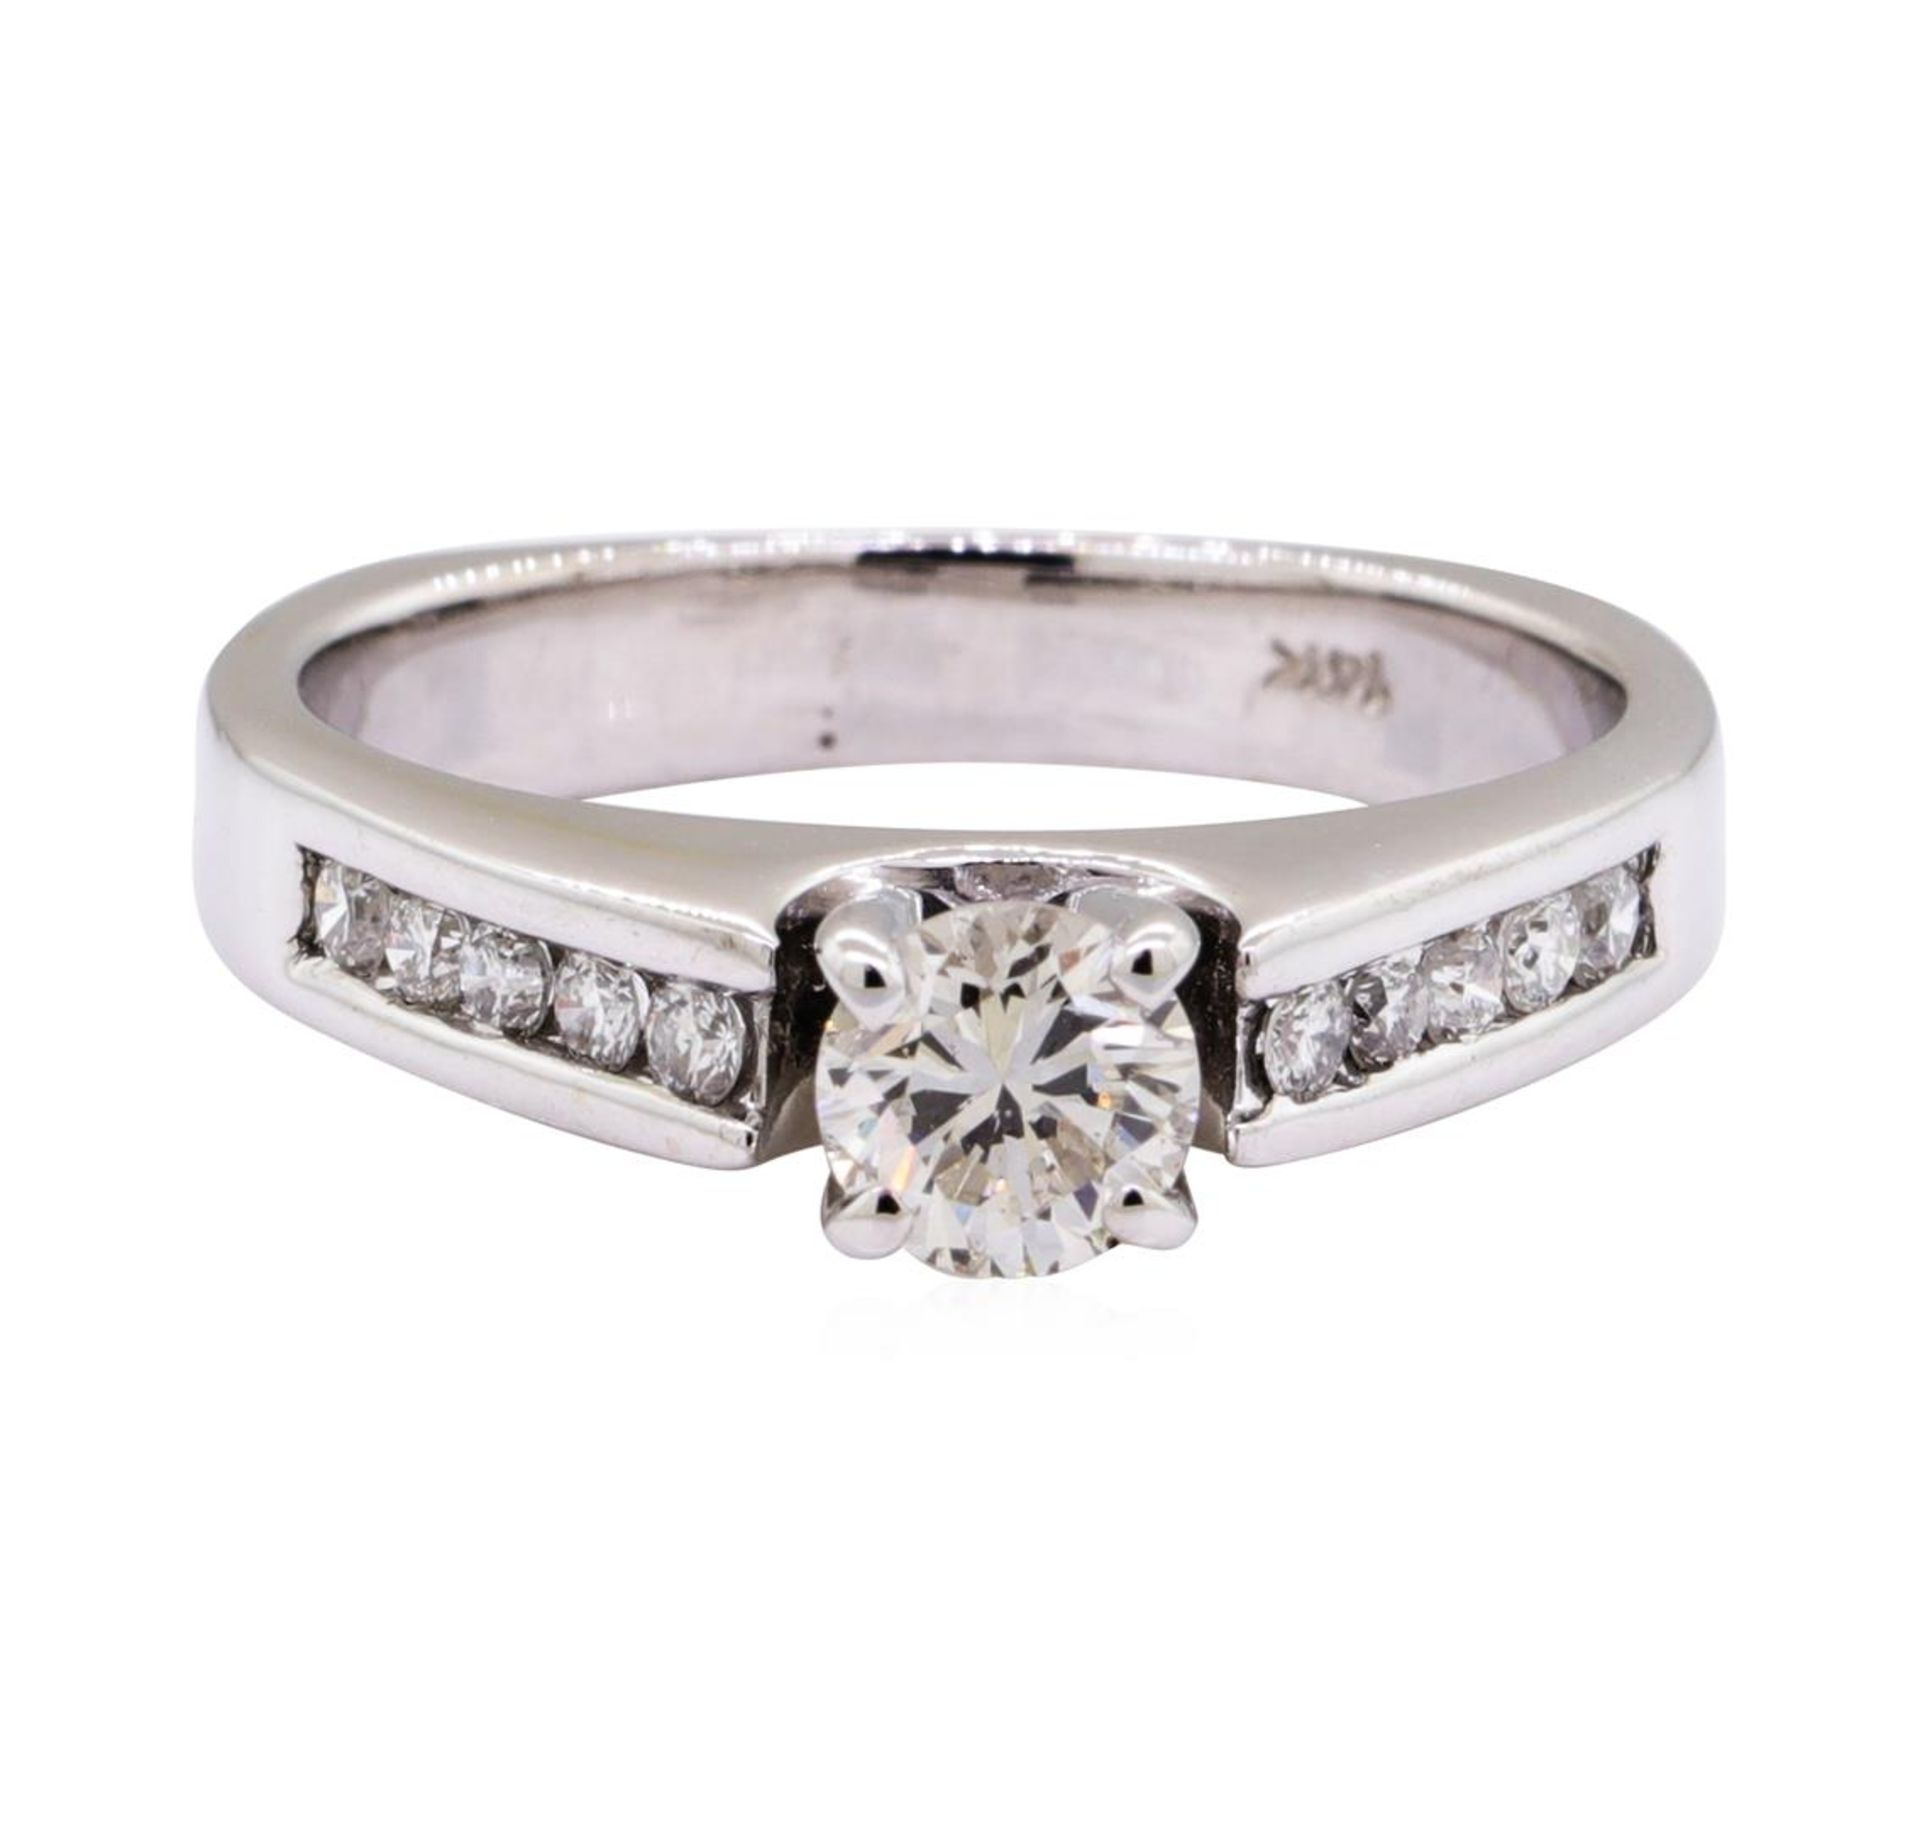 0.80 ctw Diamond Wedding Ring with a Euro Shank - 14KT White Gold - Image 2 of 4